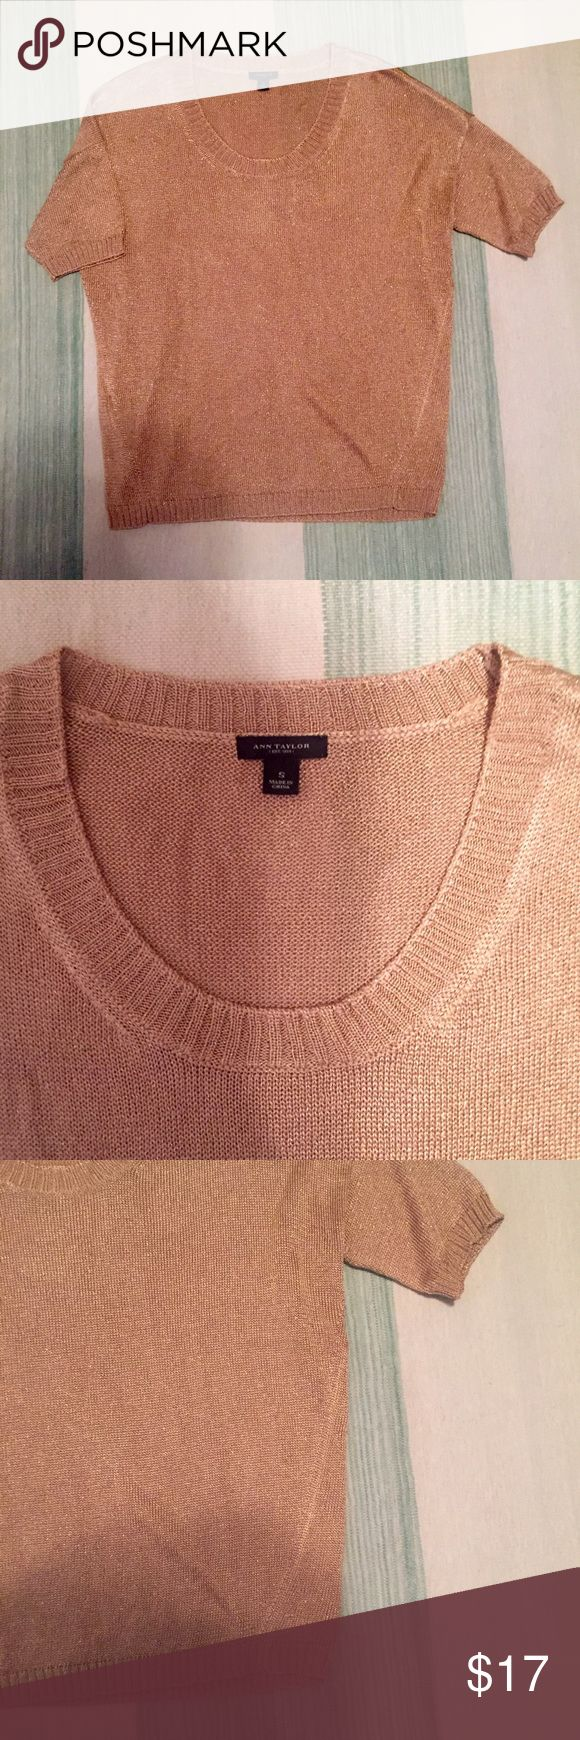 Ann Taylor gold metallic short sleeve top Size S Ann Taylor gold knit short sleeve top size small. Loose fit. Crewneck. Gold metallic. Stretchy material. No snags or signs of wear. Ann Taylor Tops Tees - Short Sleeve